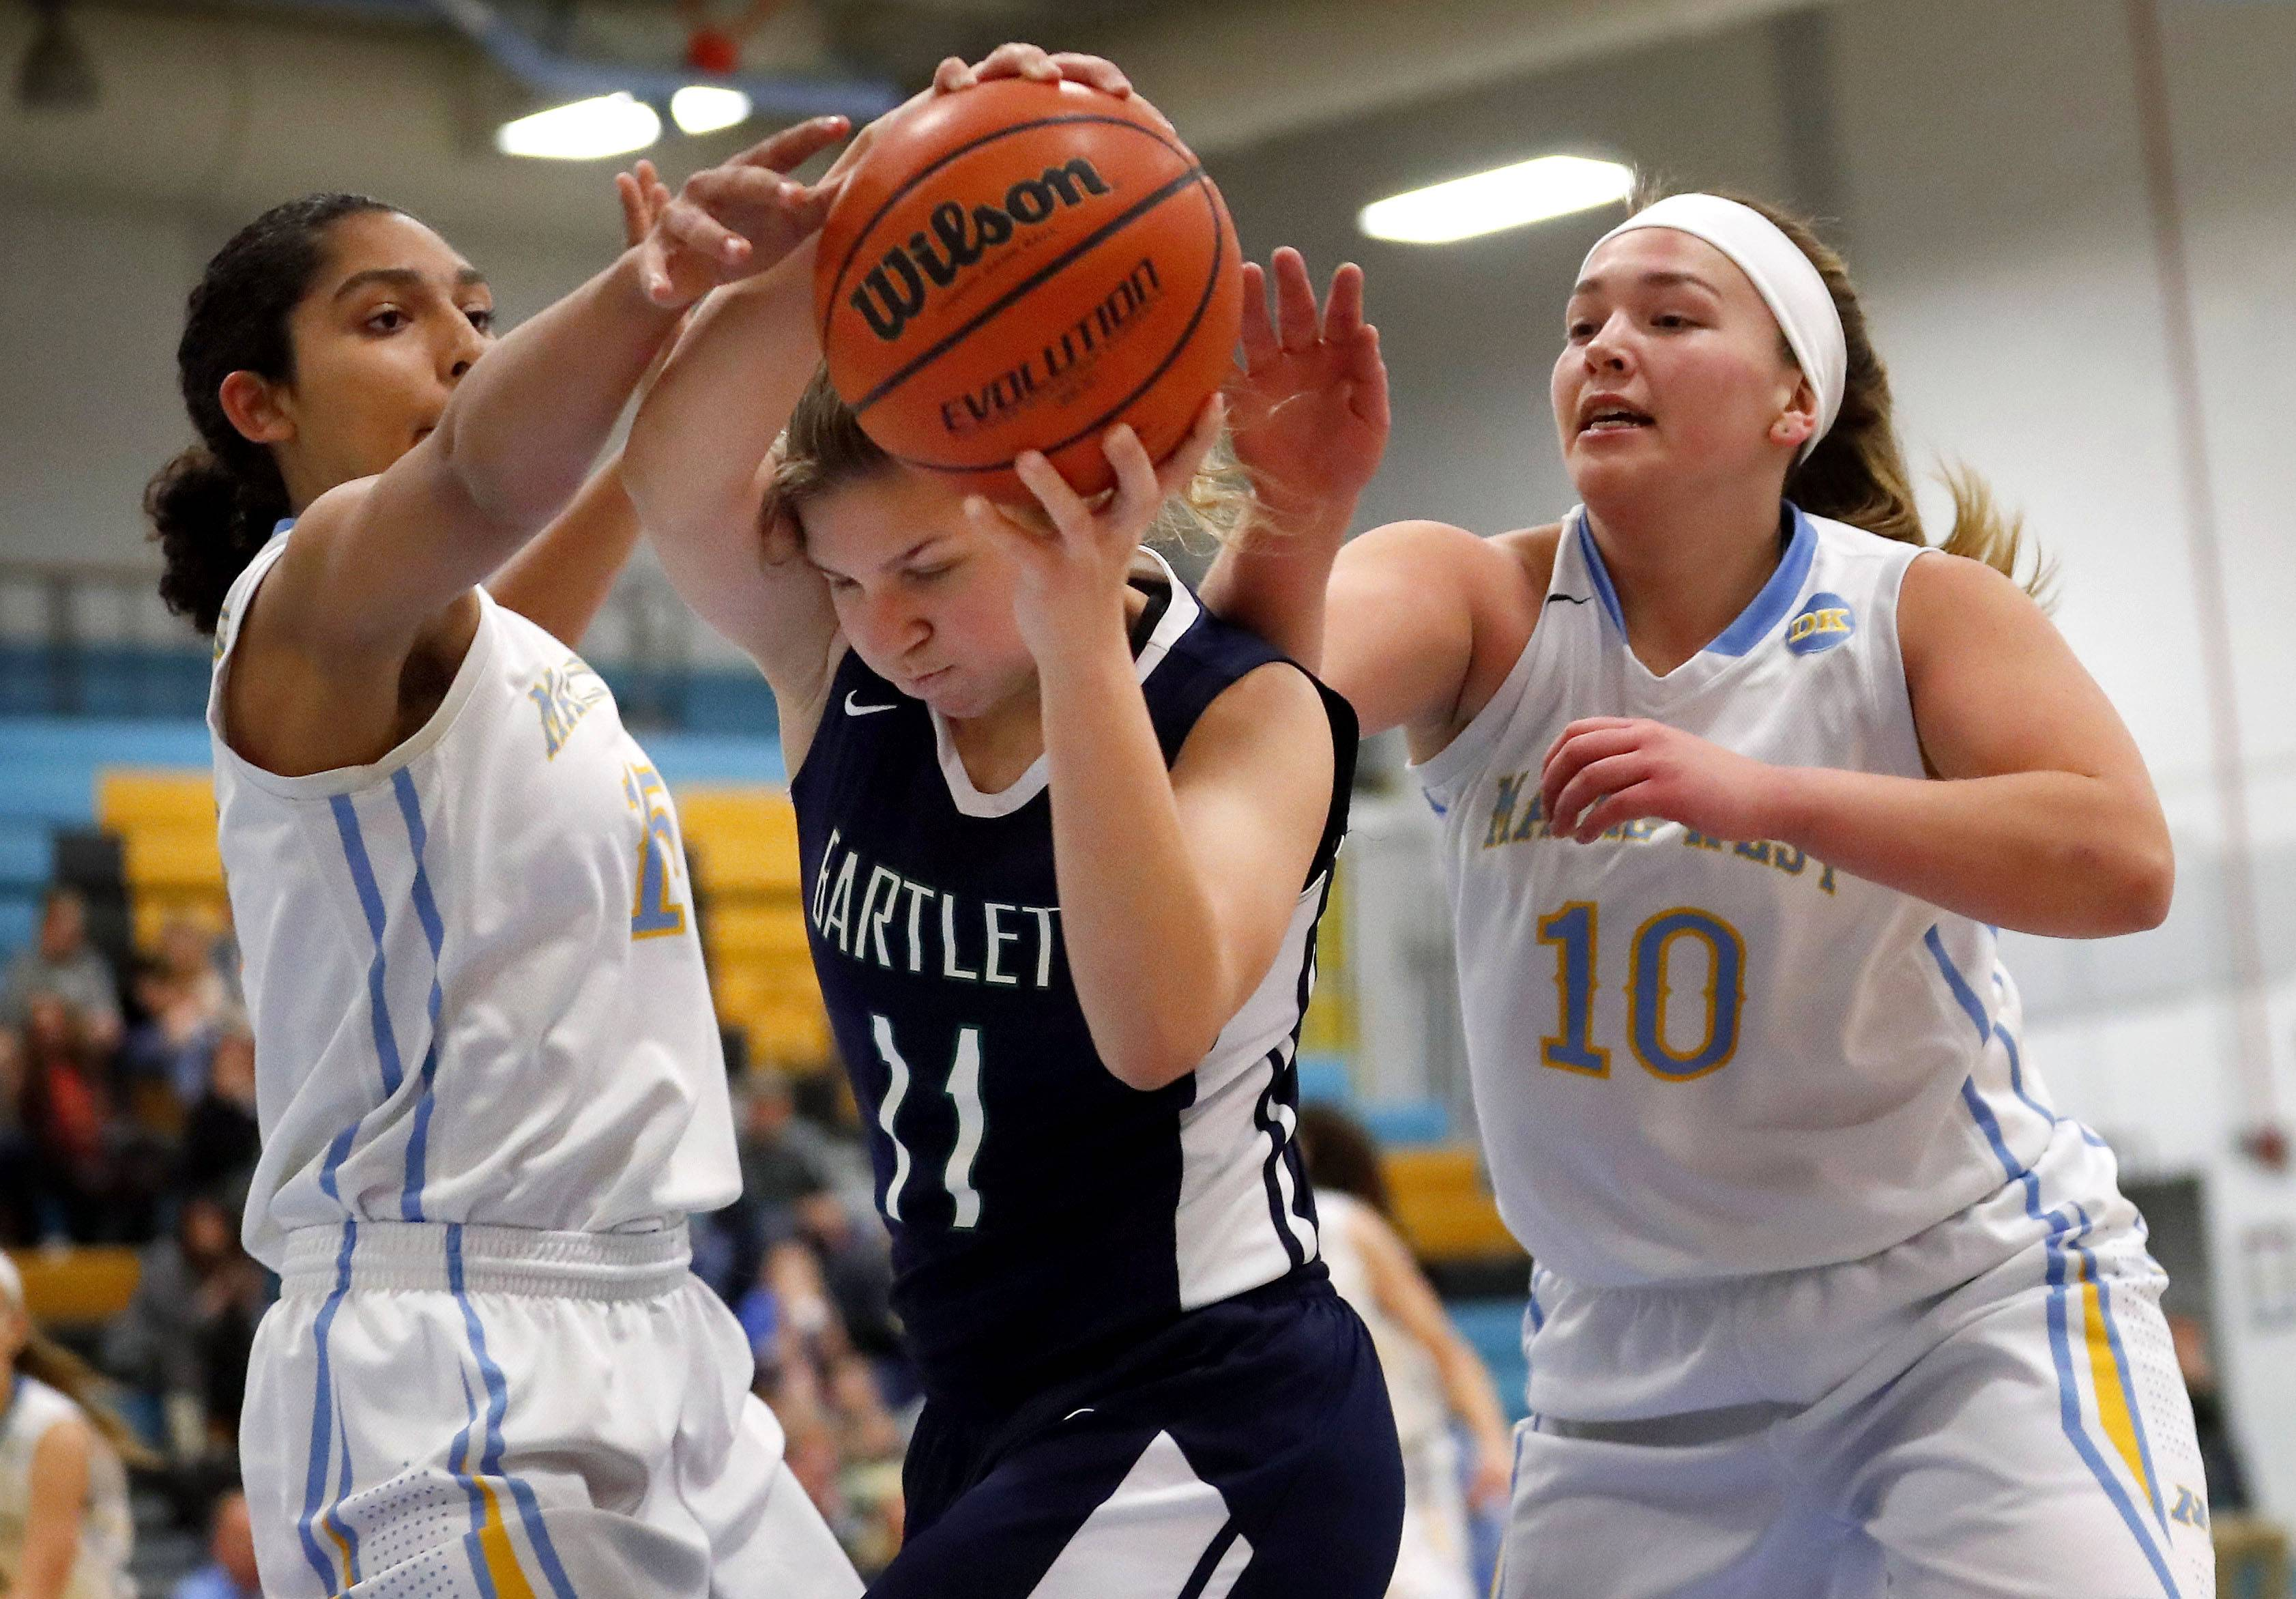 Maine West's Rachel Kent, left, and Allison Pearson defend against Bartlett's Alexis Sinclair.